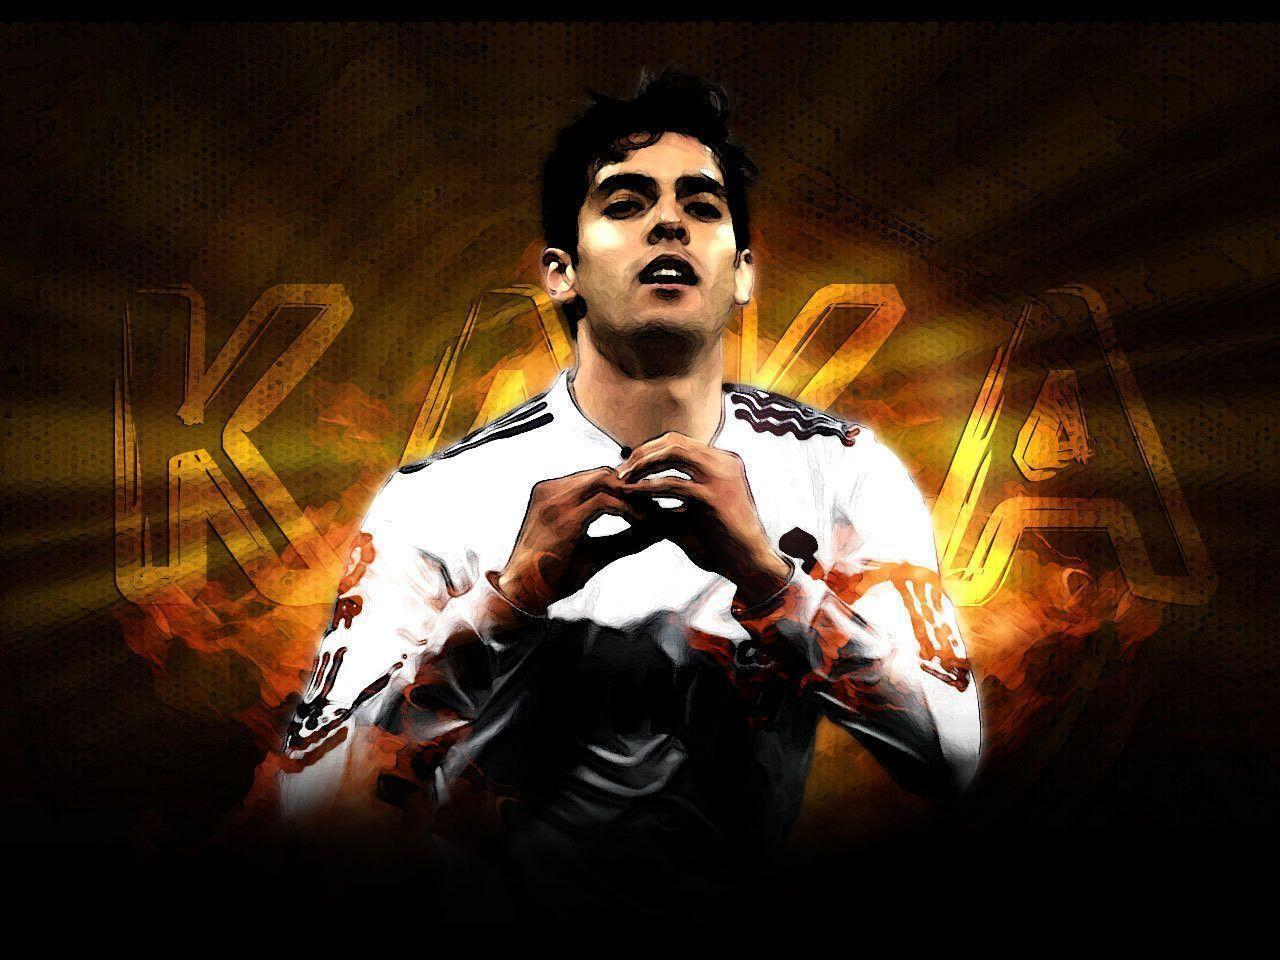 Kaka Wallpaper.